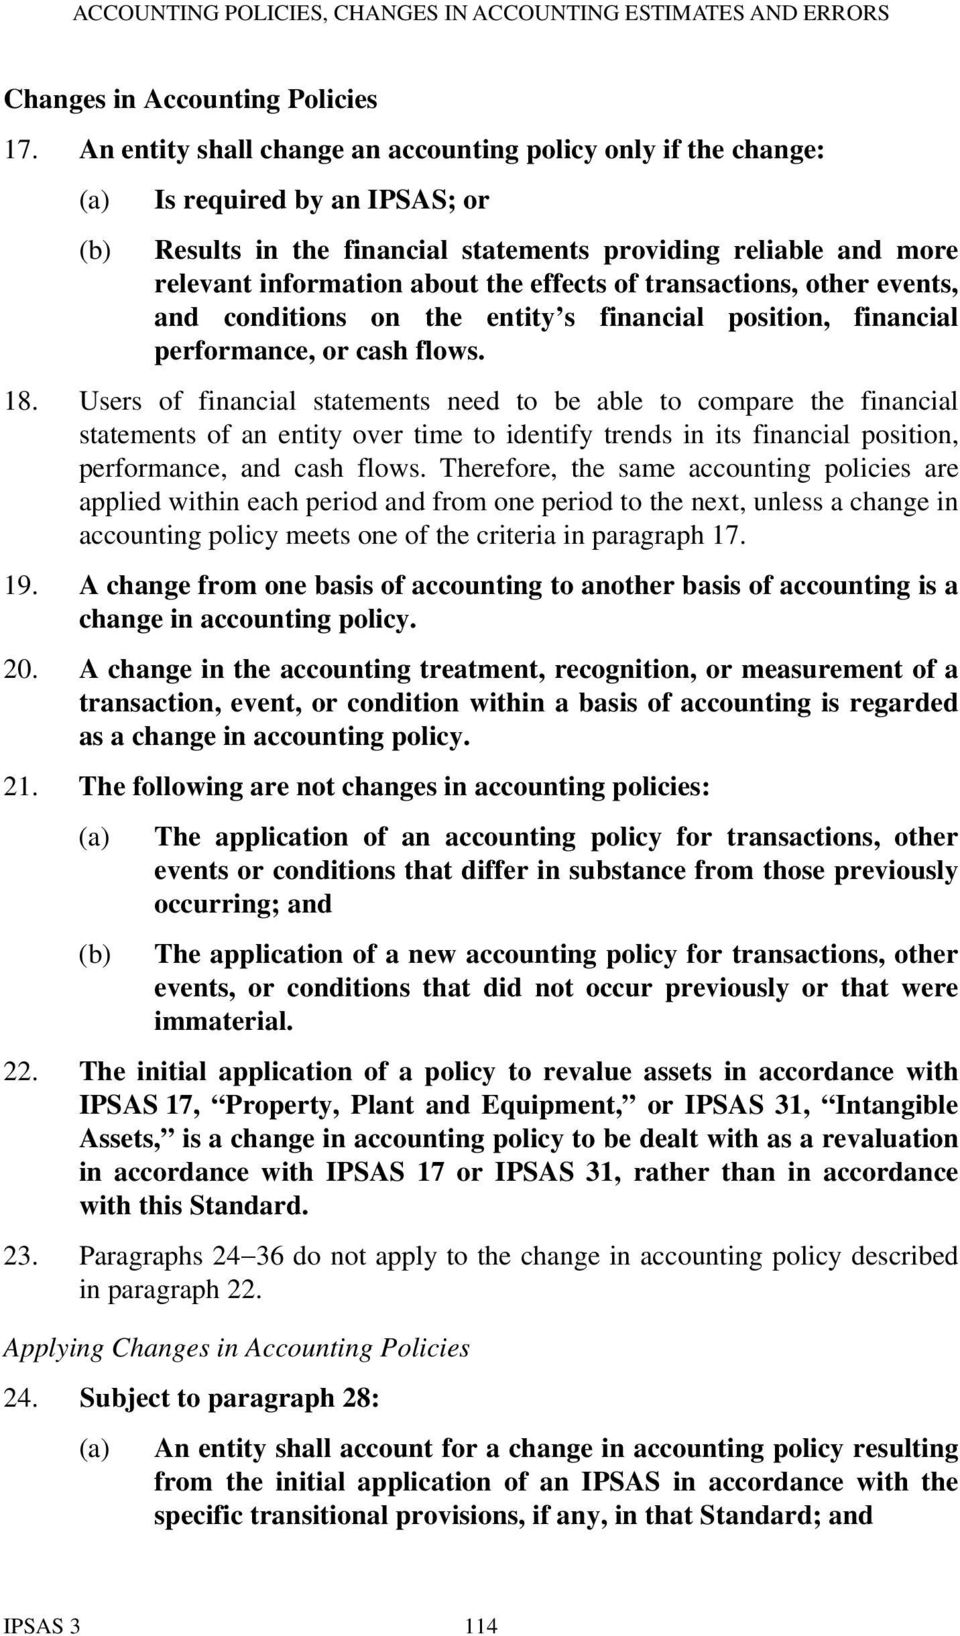 effects of transactions, other events, and conditions on the entity s financial position, financial performance, or cash flows. 18.